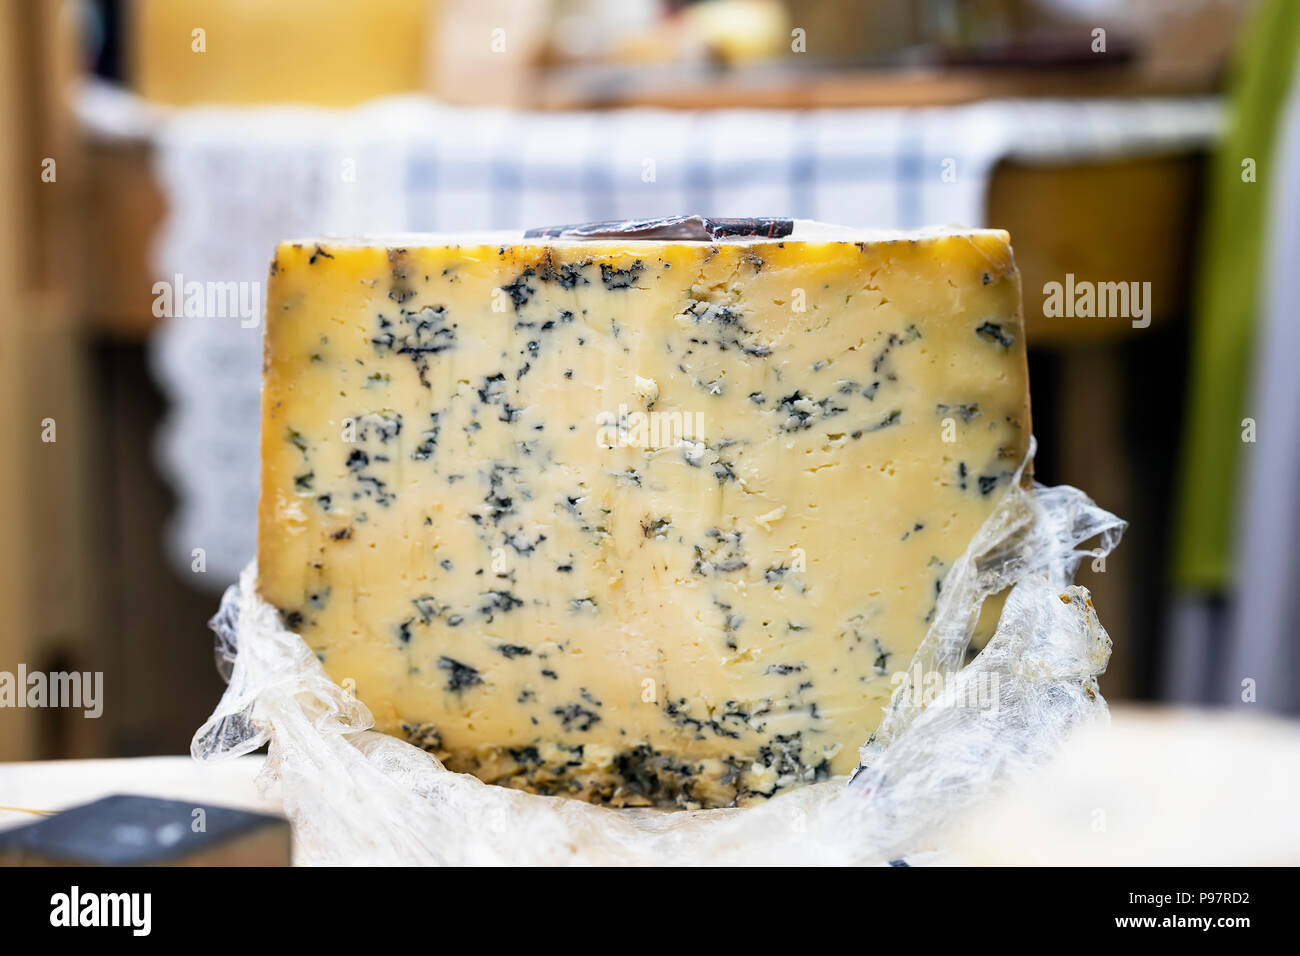 Large cheese wheel with blue mold on market counter, colorful colors. Gastronomic dainty products on market counter, real scene in food market - Stock Image